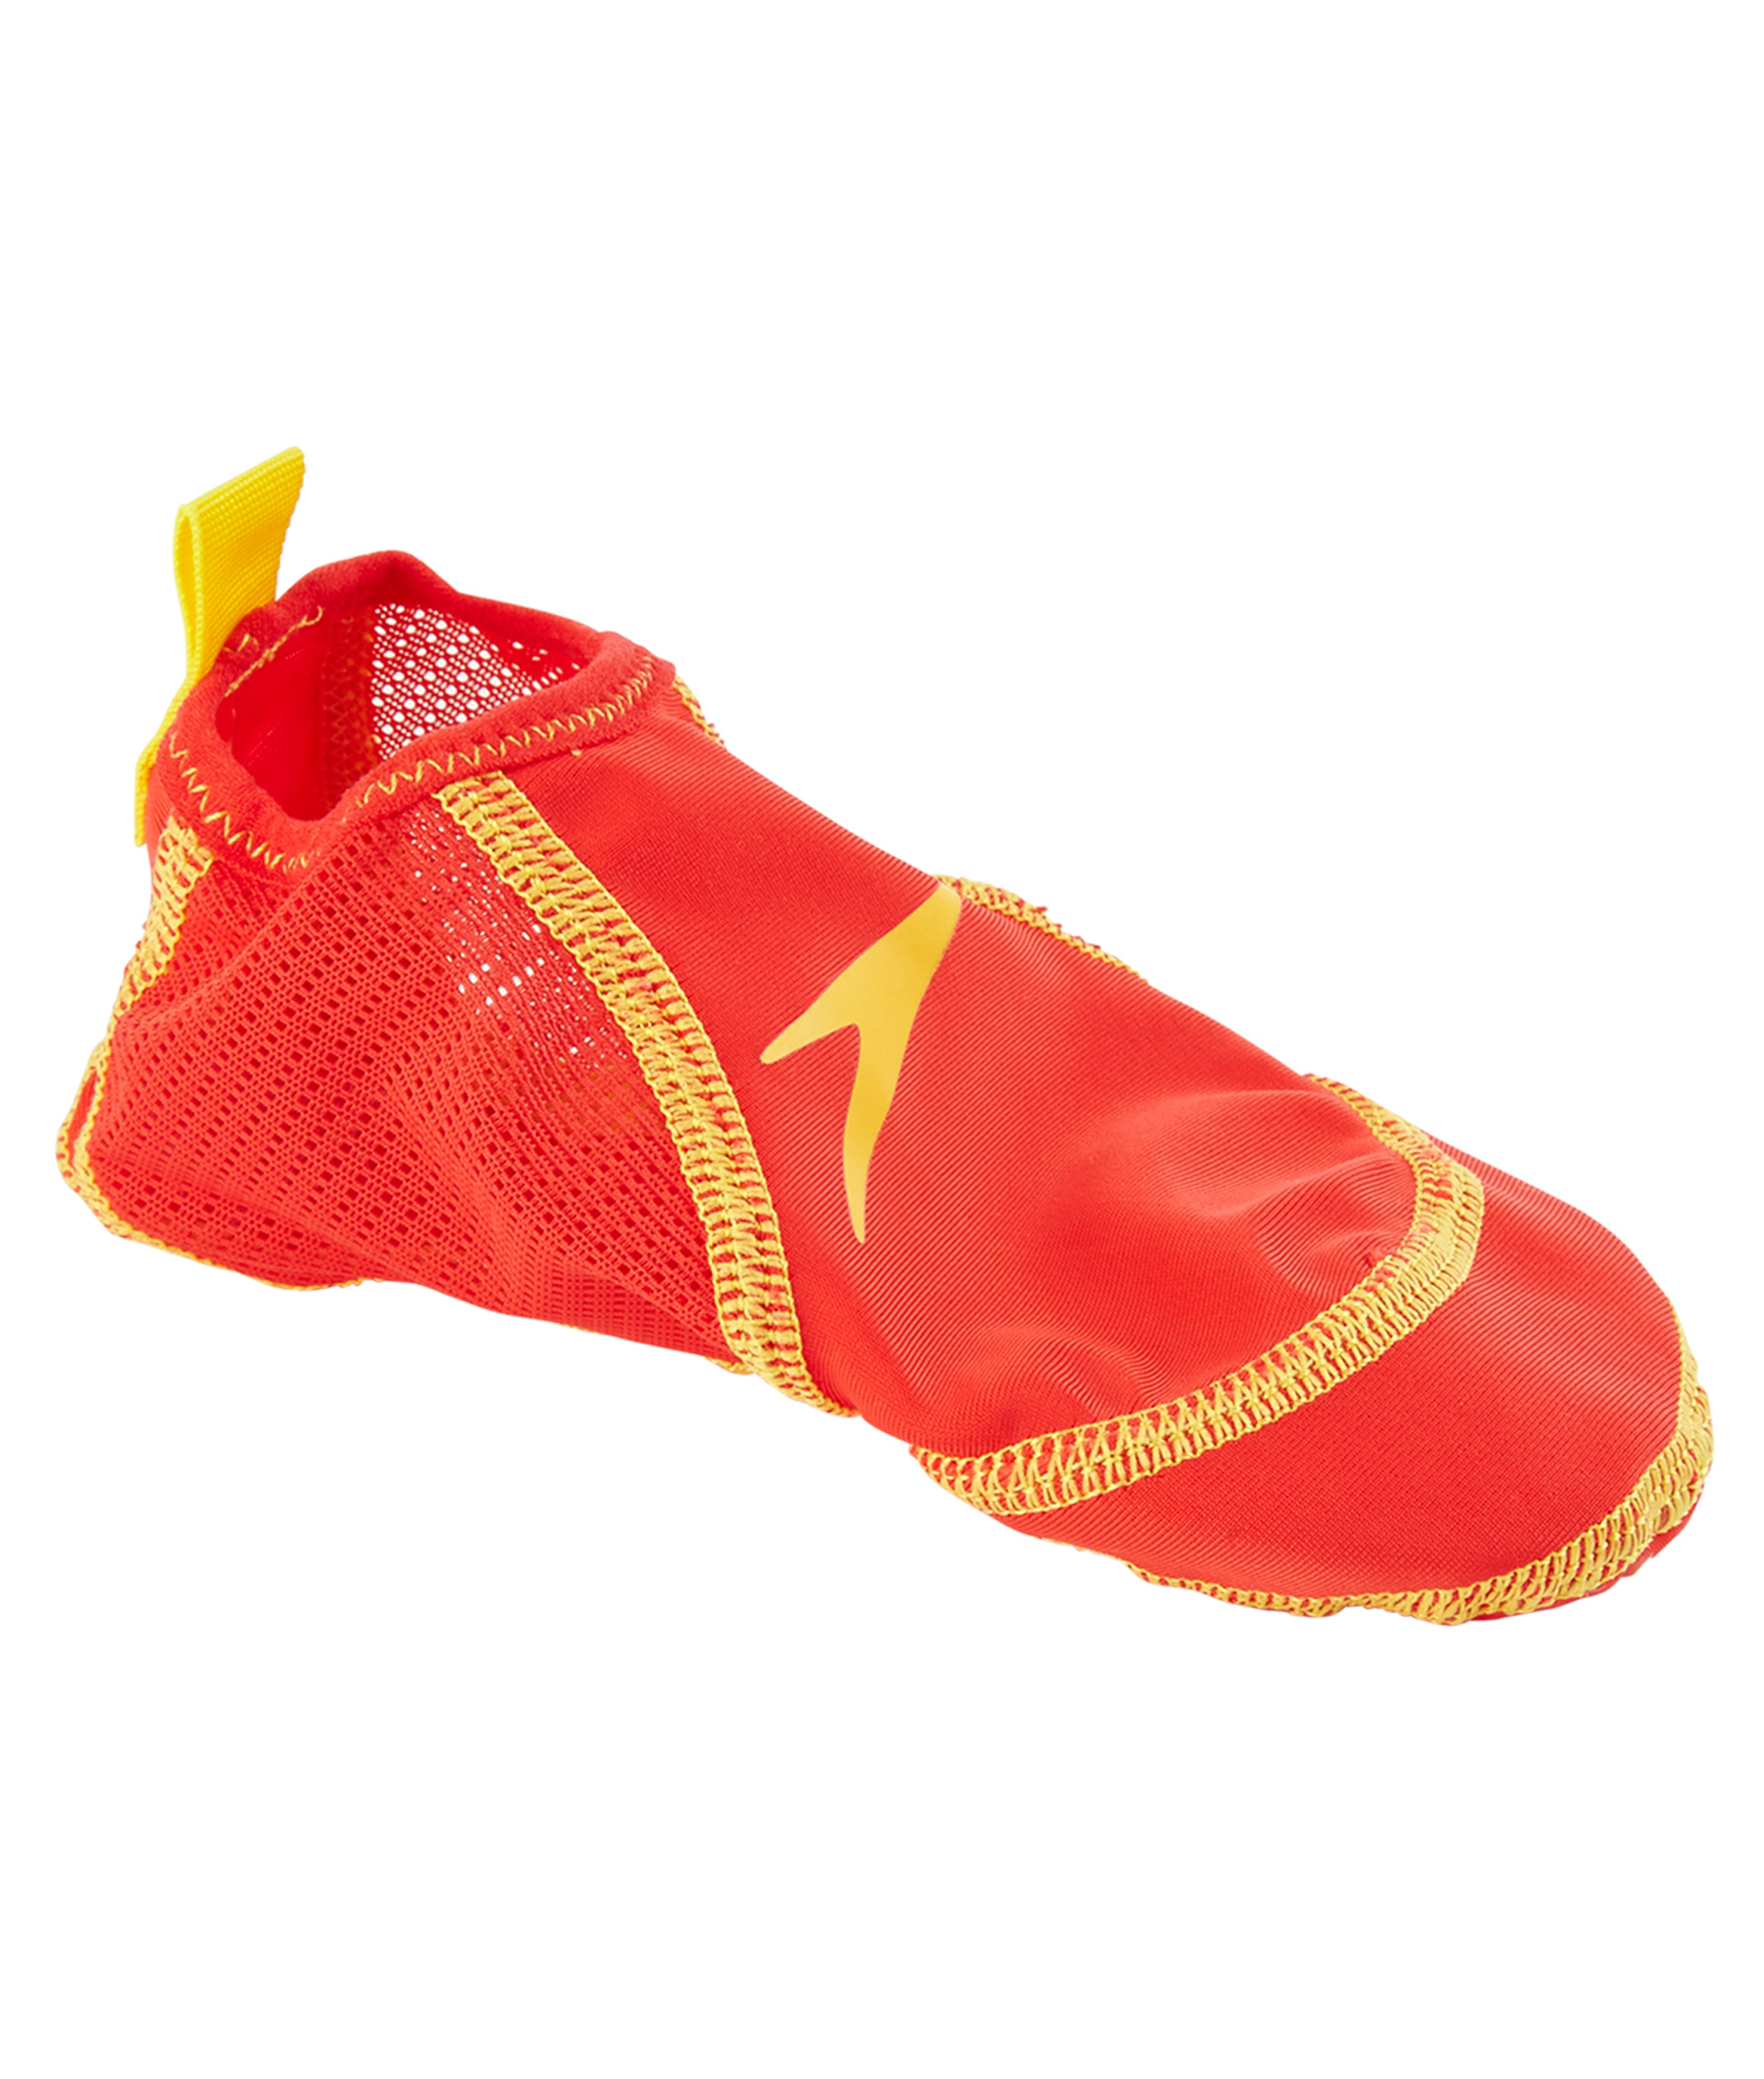 Speedo Junior Pool Sock - Red/Yellow